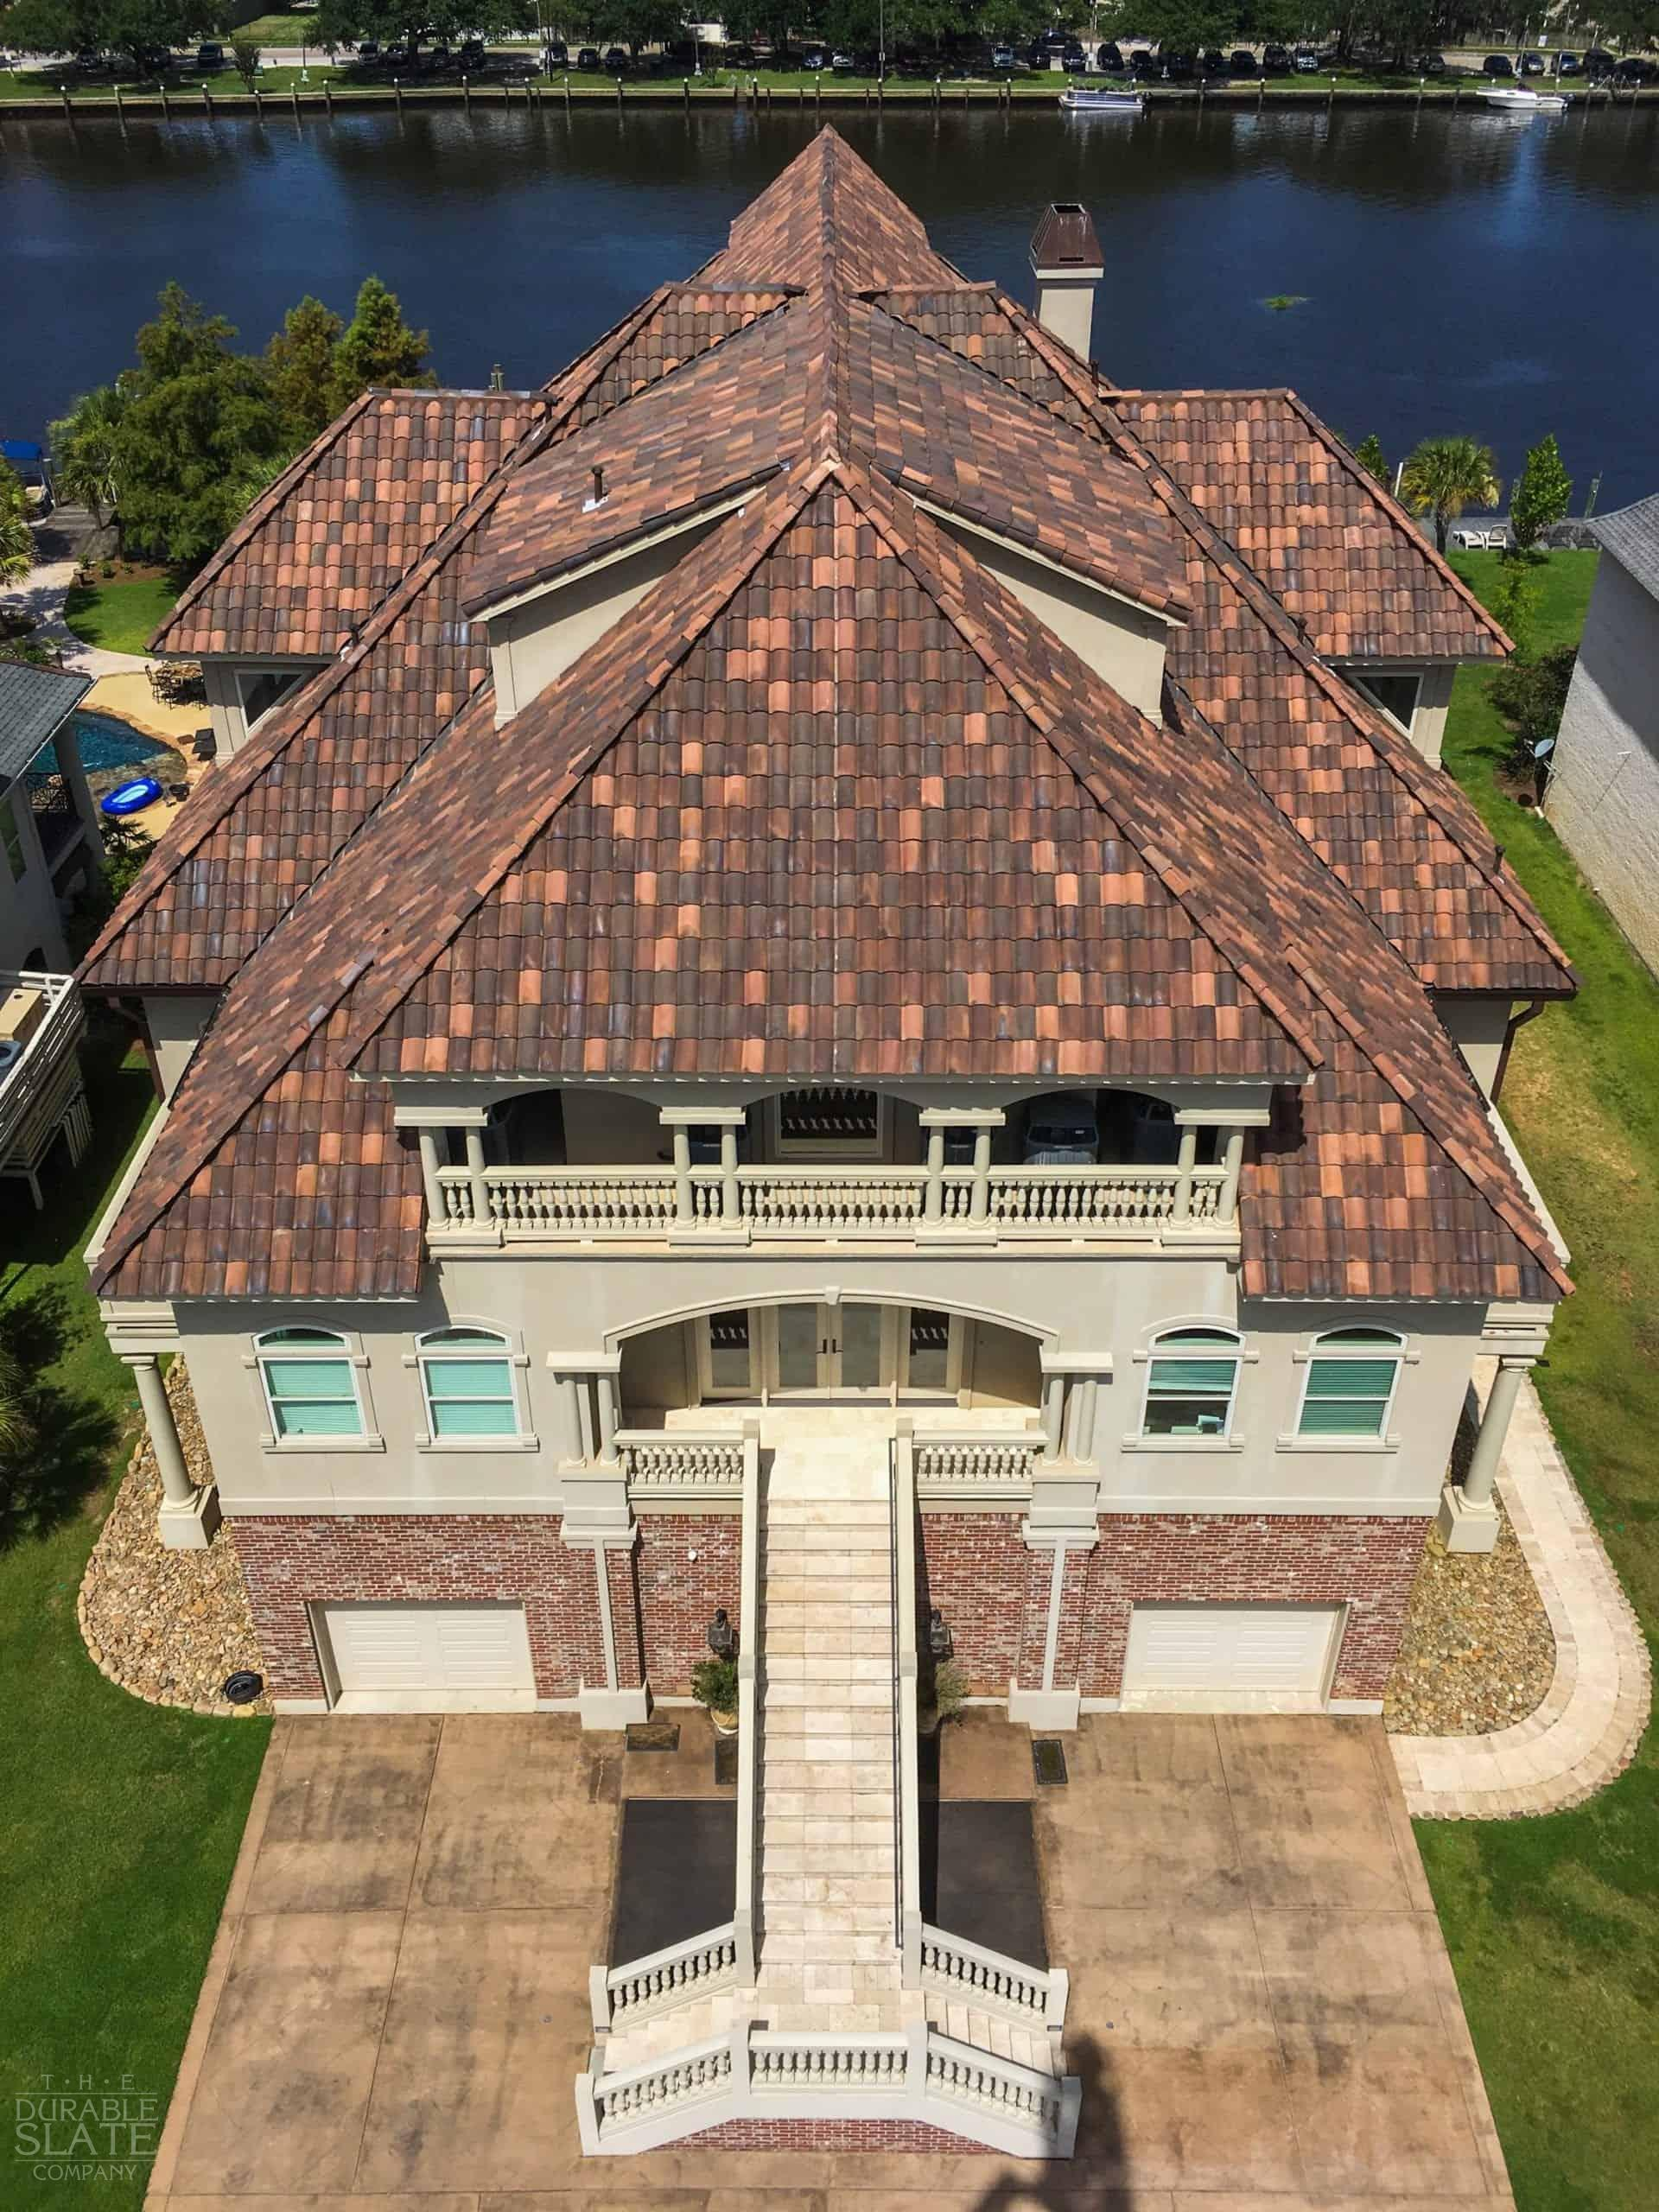 clay roofing tiles as seen from drone above